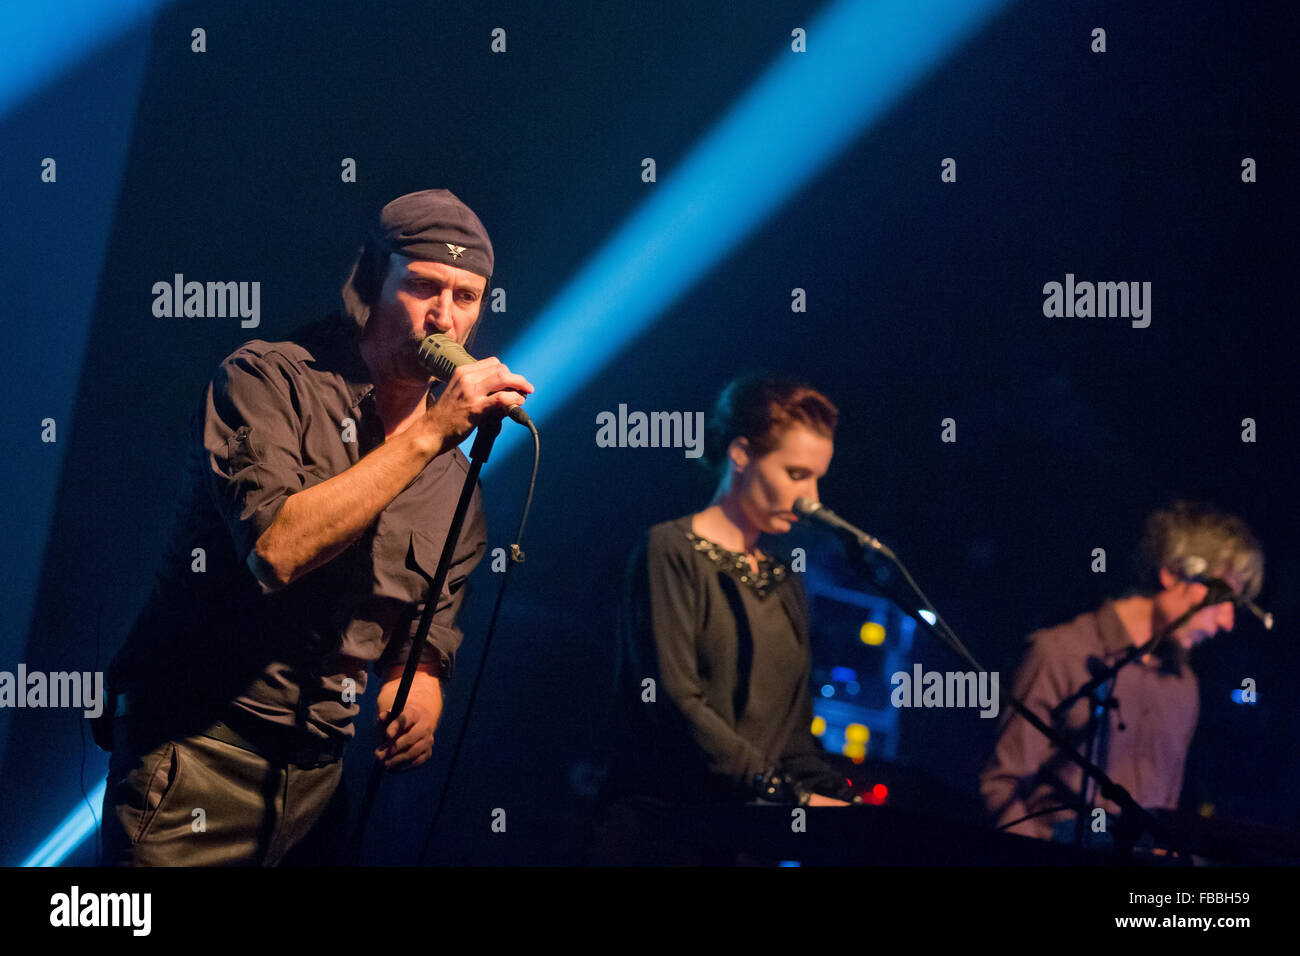 Singer from the Slovenian band Laibach, Milan Fras (L), stands on stage in Nuremberg, Germany, 13 January 2016. - Stock Image